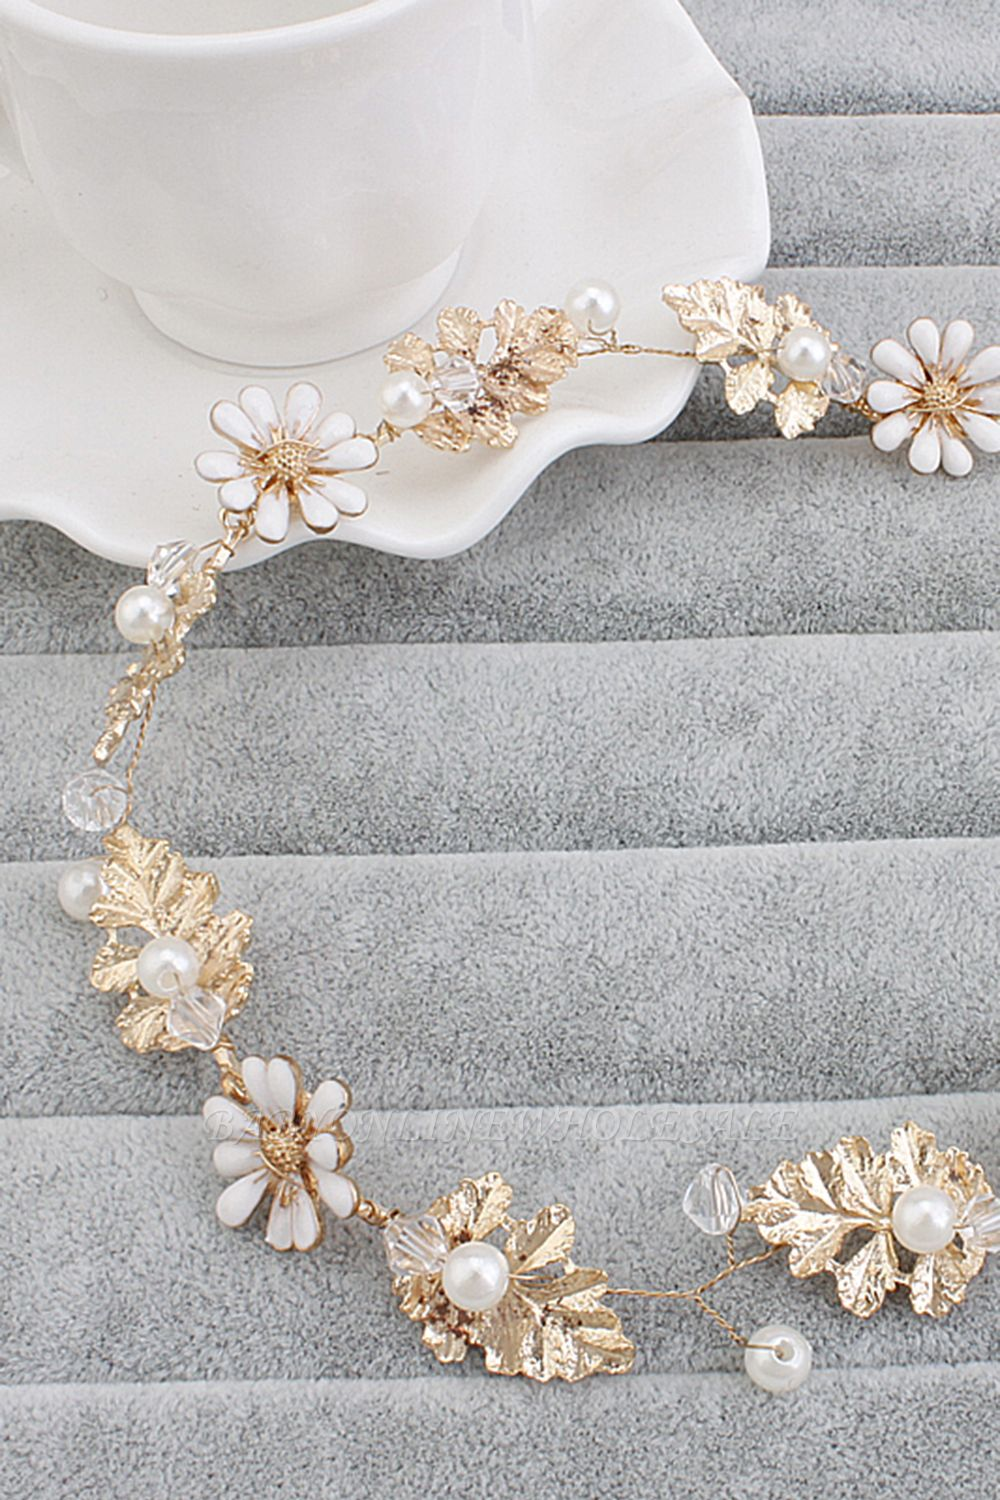 Wedding headband with white flowers